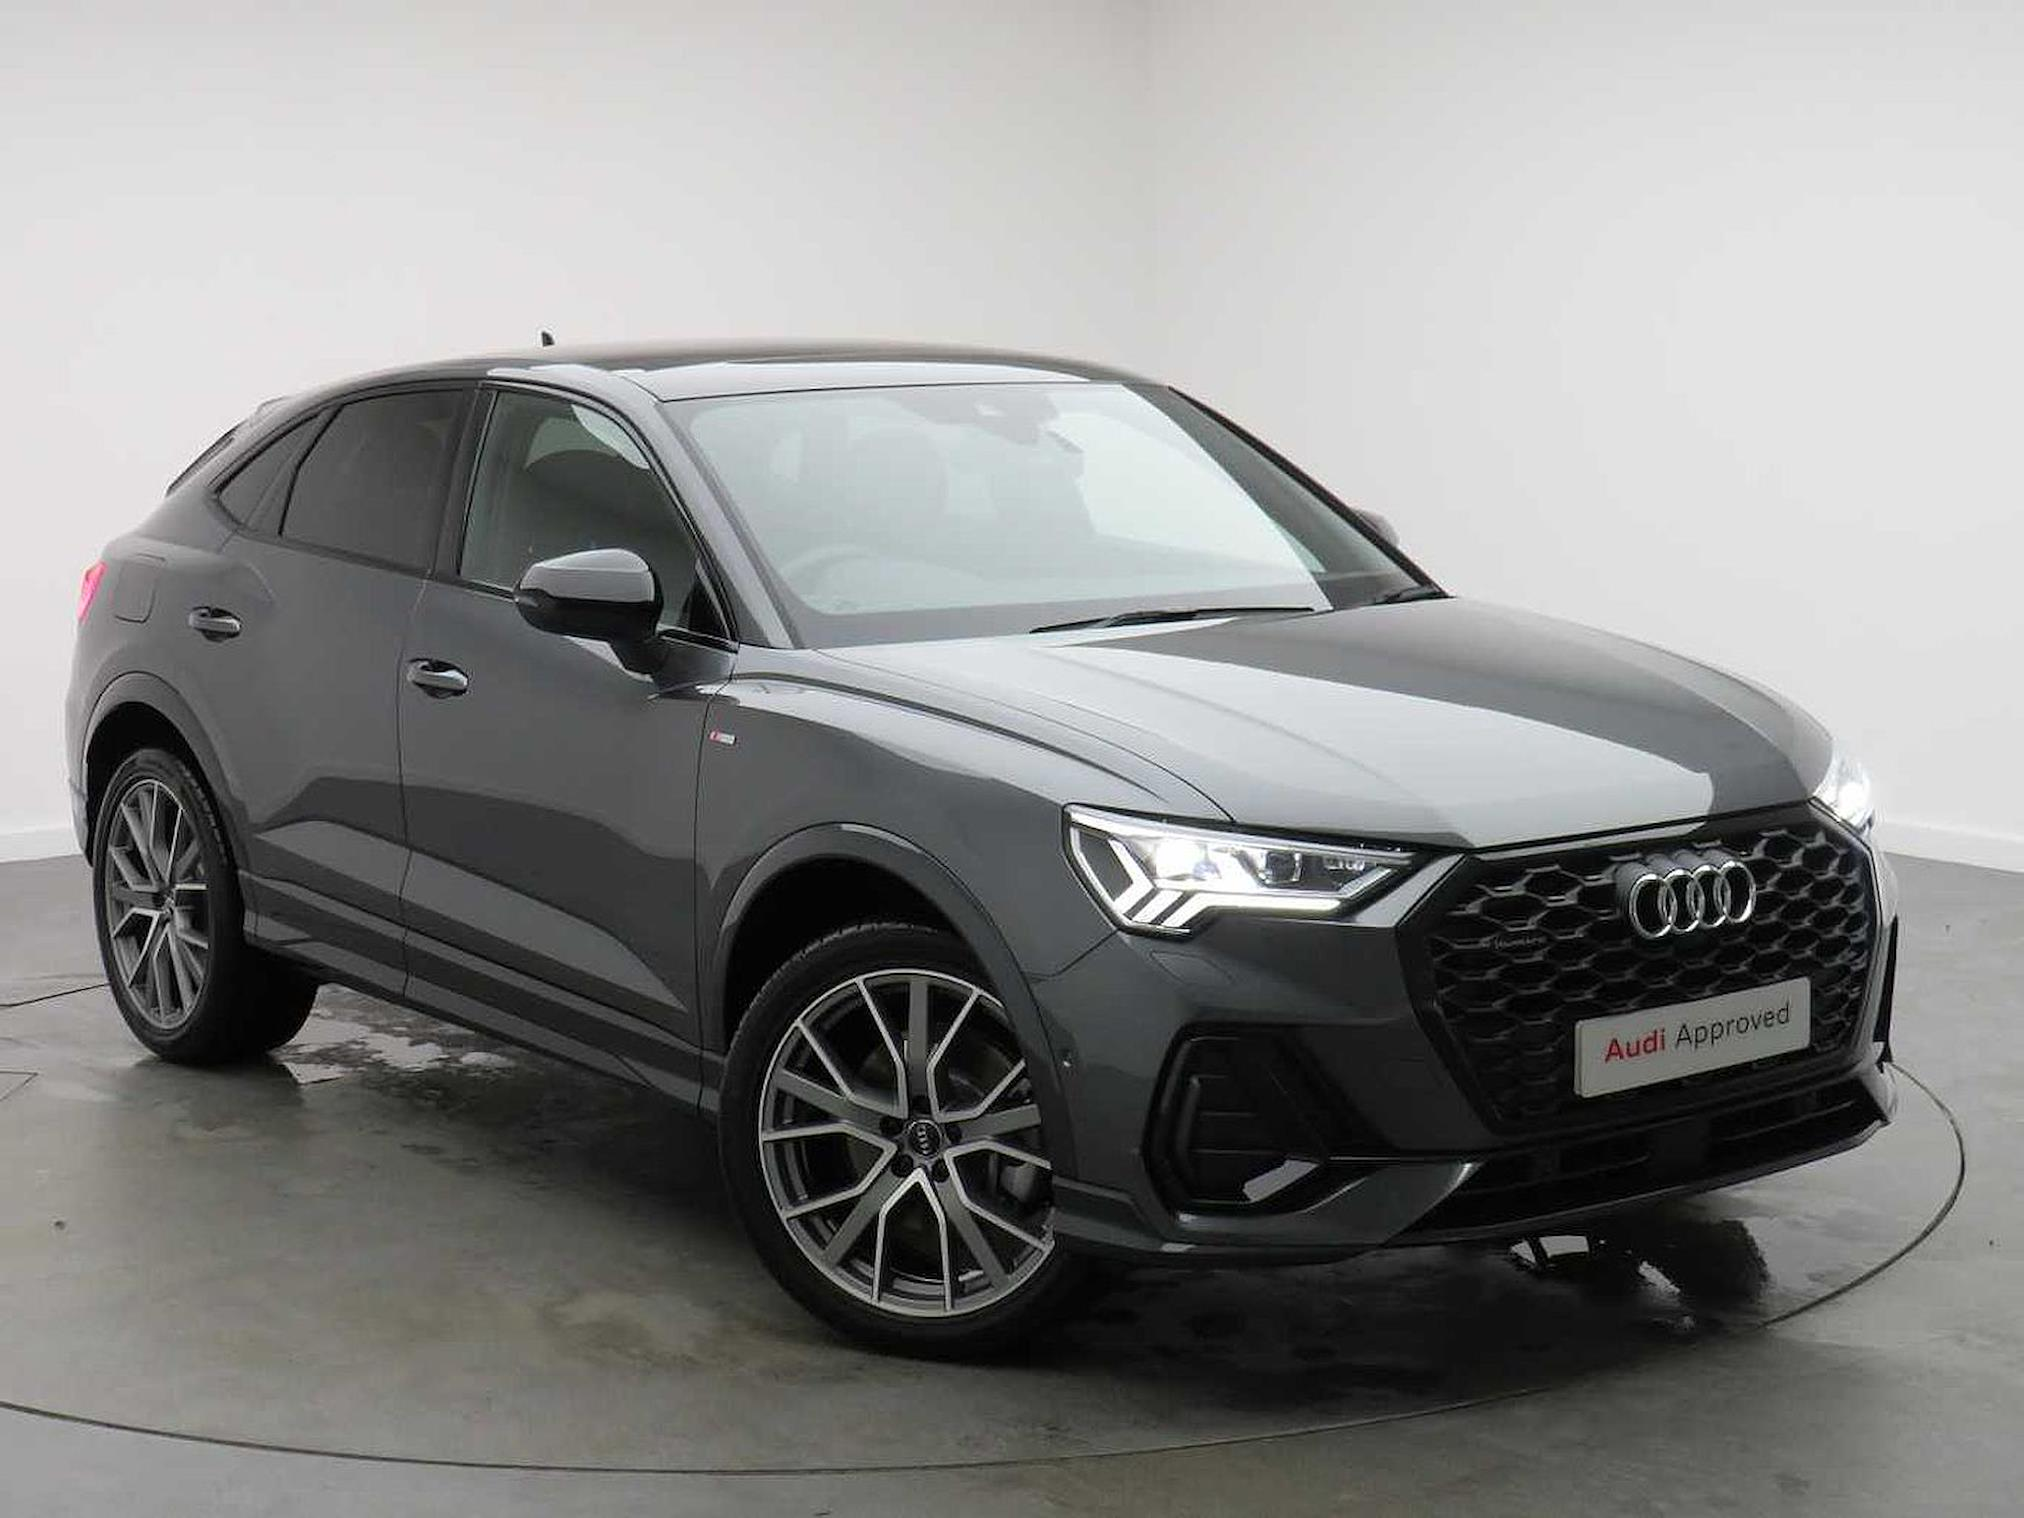 Nearly New Q3 Audi 45 Tfsi Quattro S Line 5dr S Tronic 2019 Lookers